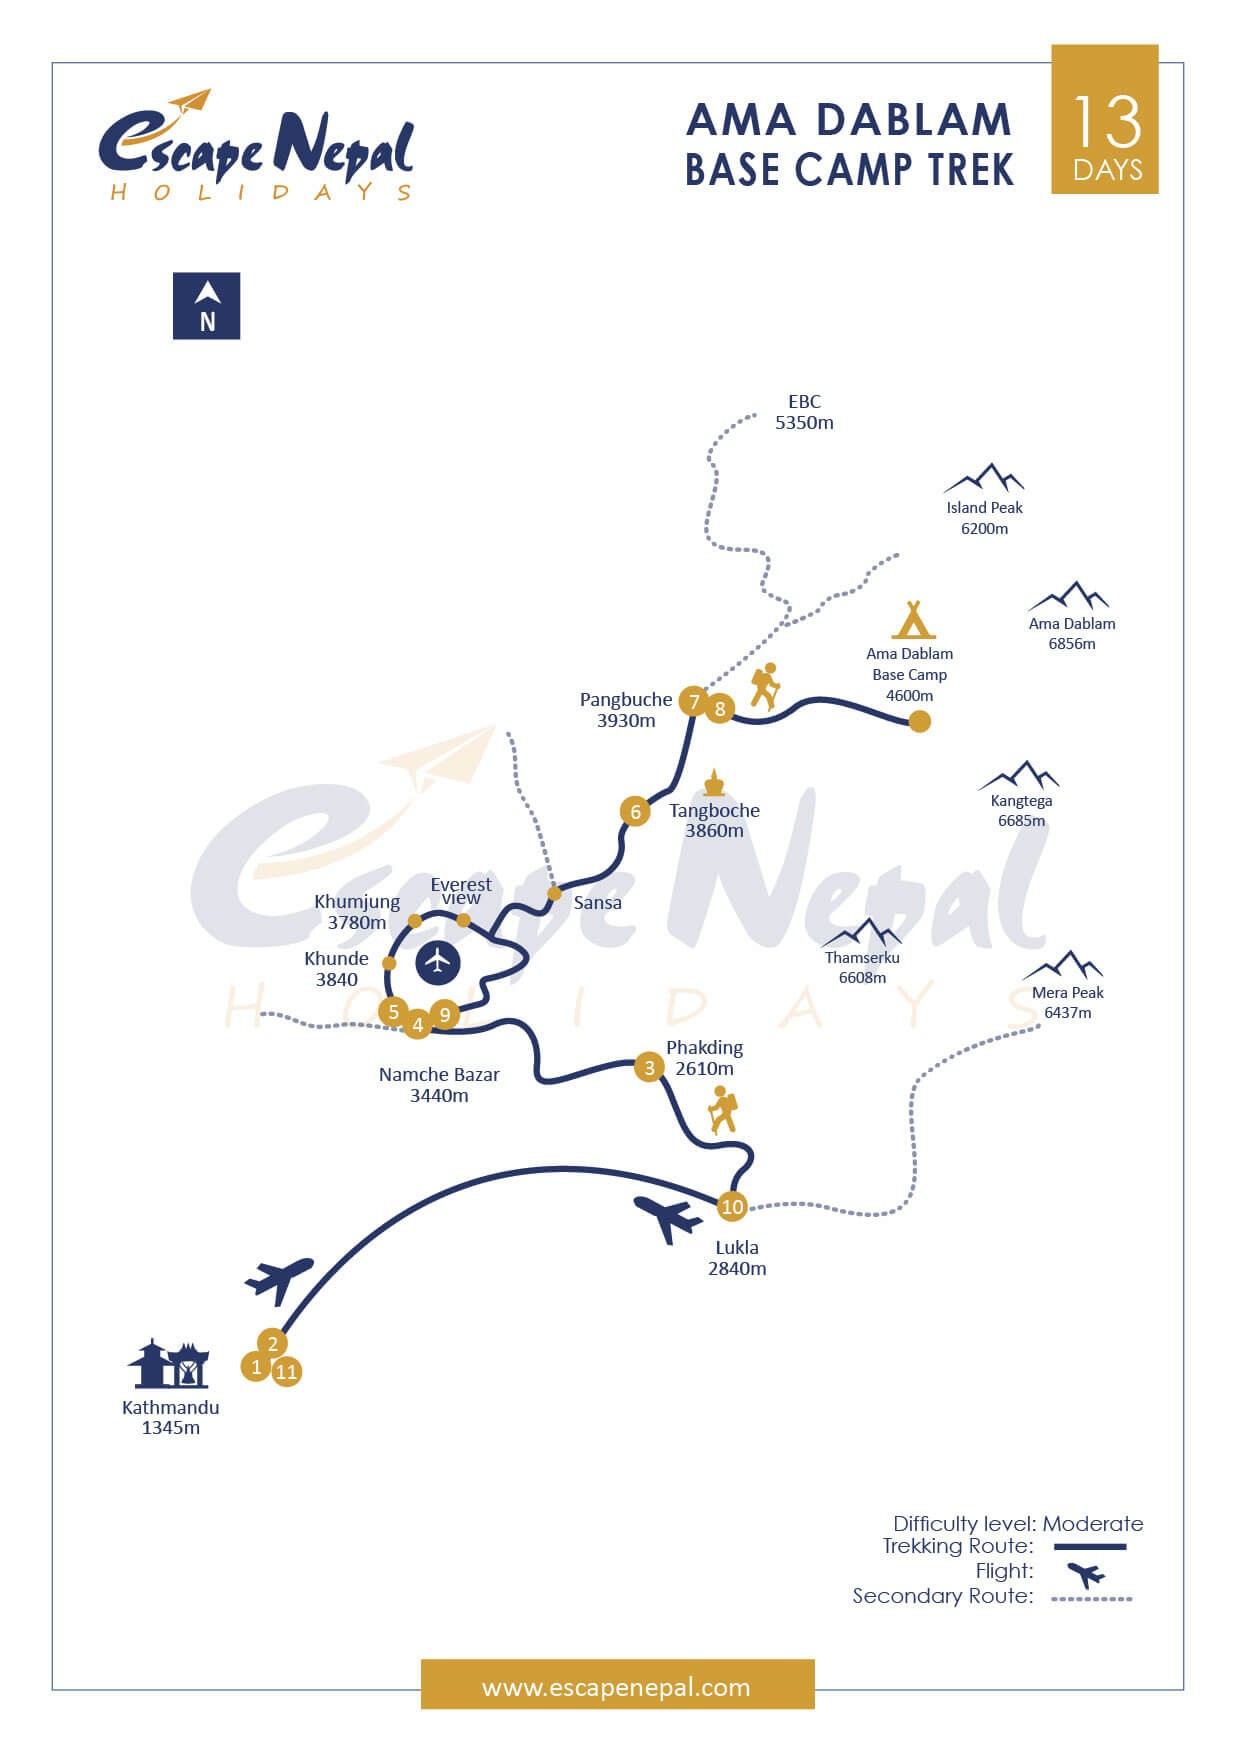 AMA DABLAM BASE CAMP TREK map